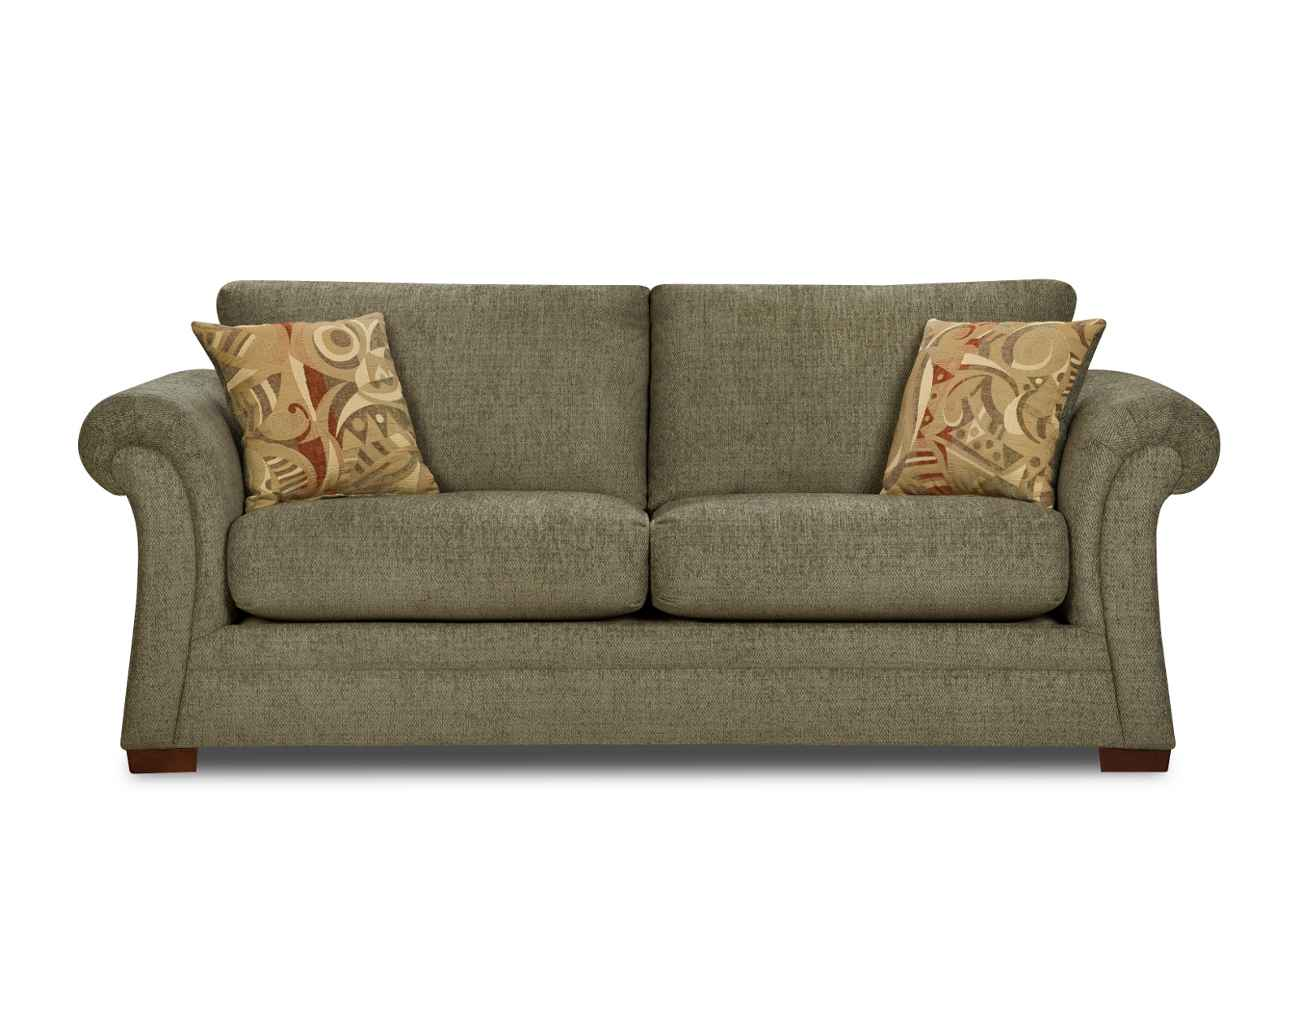 Discount Green Sofa for Your Home